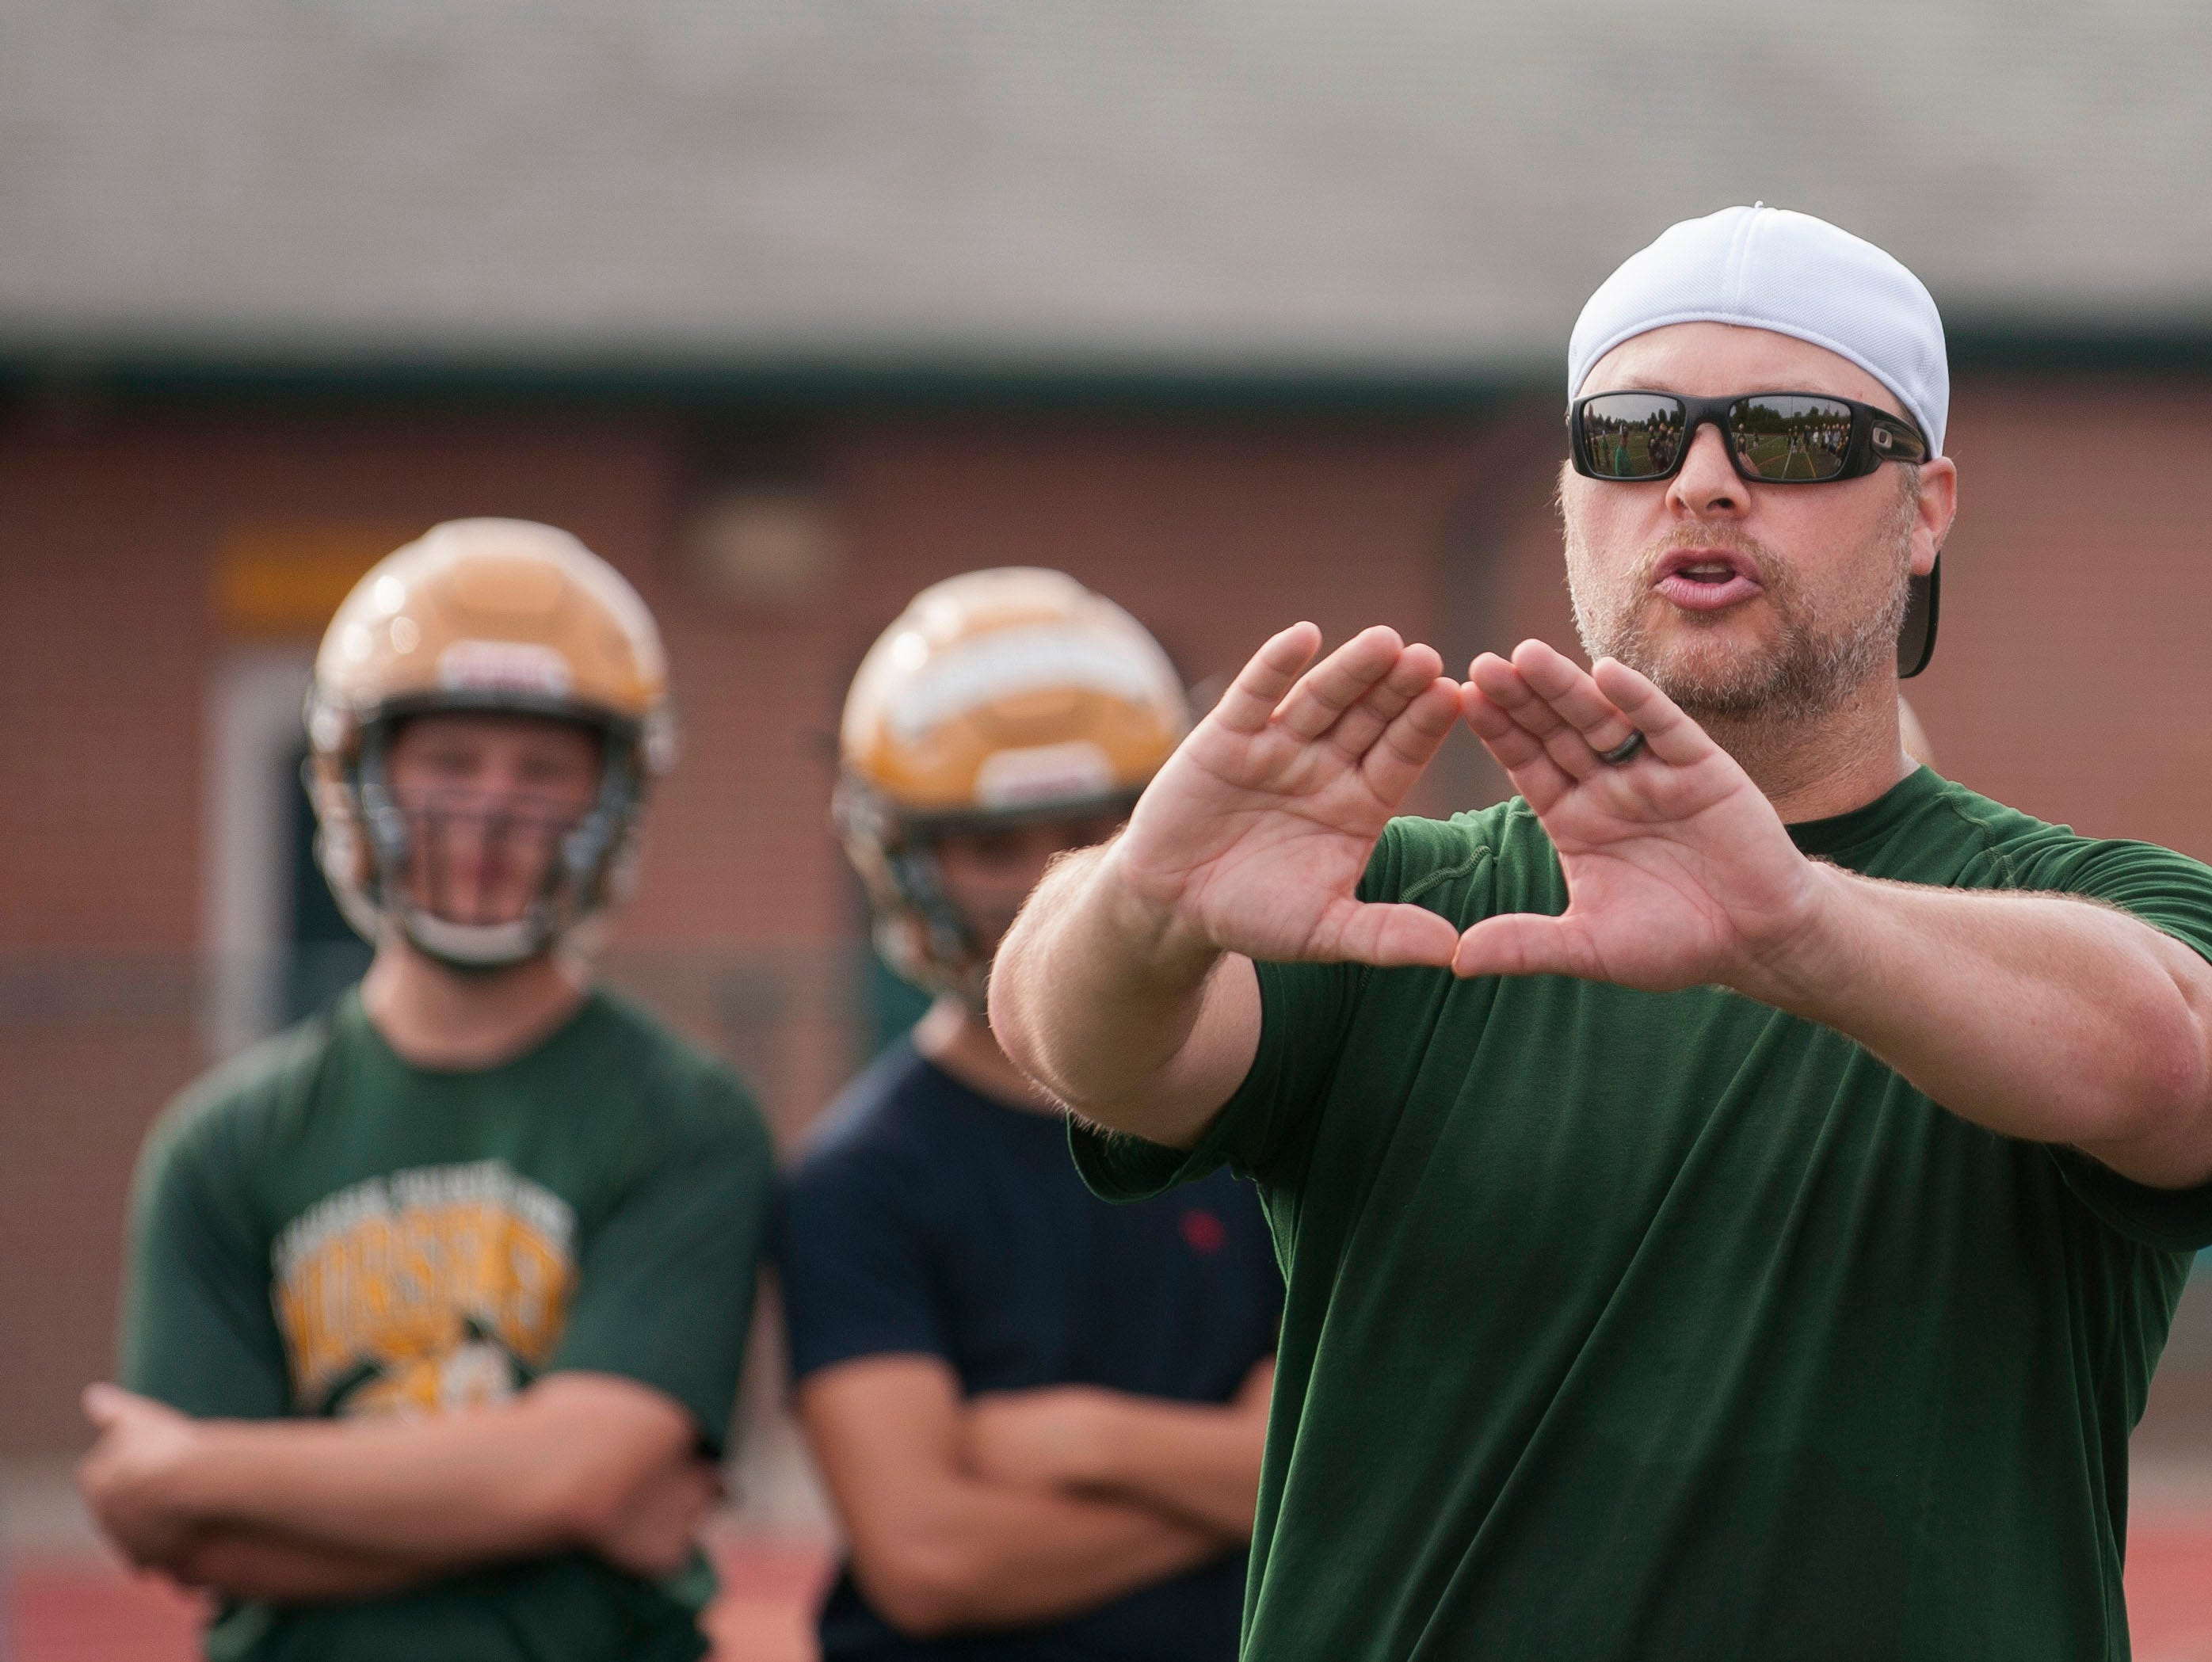 New head coach Joe Drouin leads the Grosse Pointe North football team in their first practice of the season Monday in Grosse Pointe Woods.